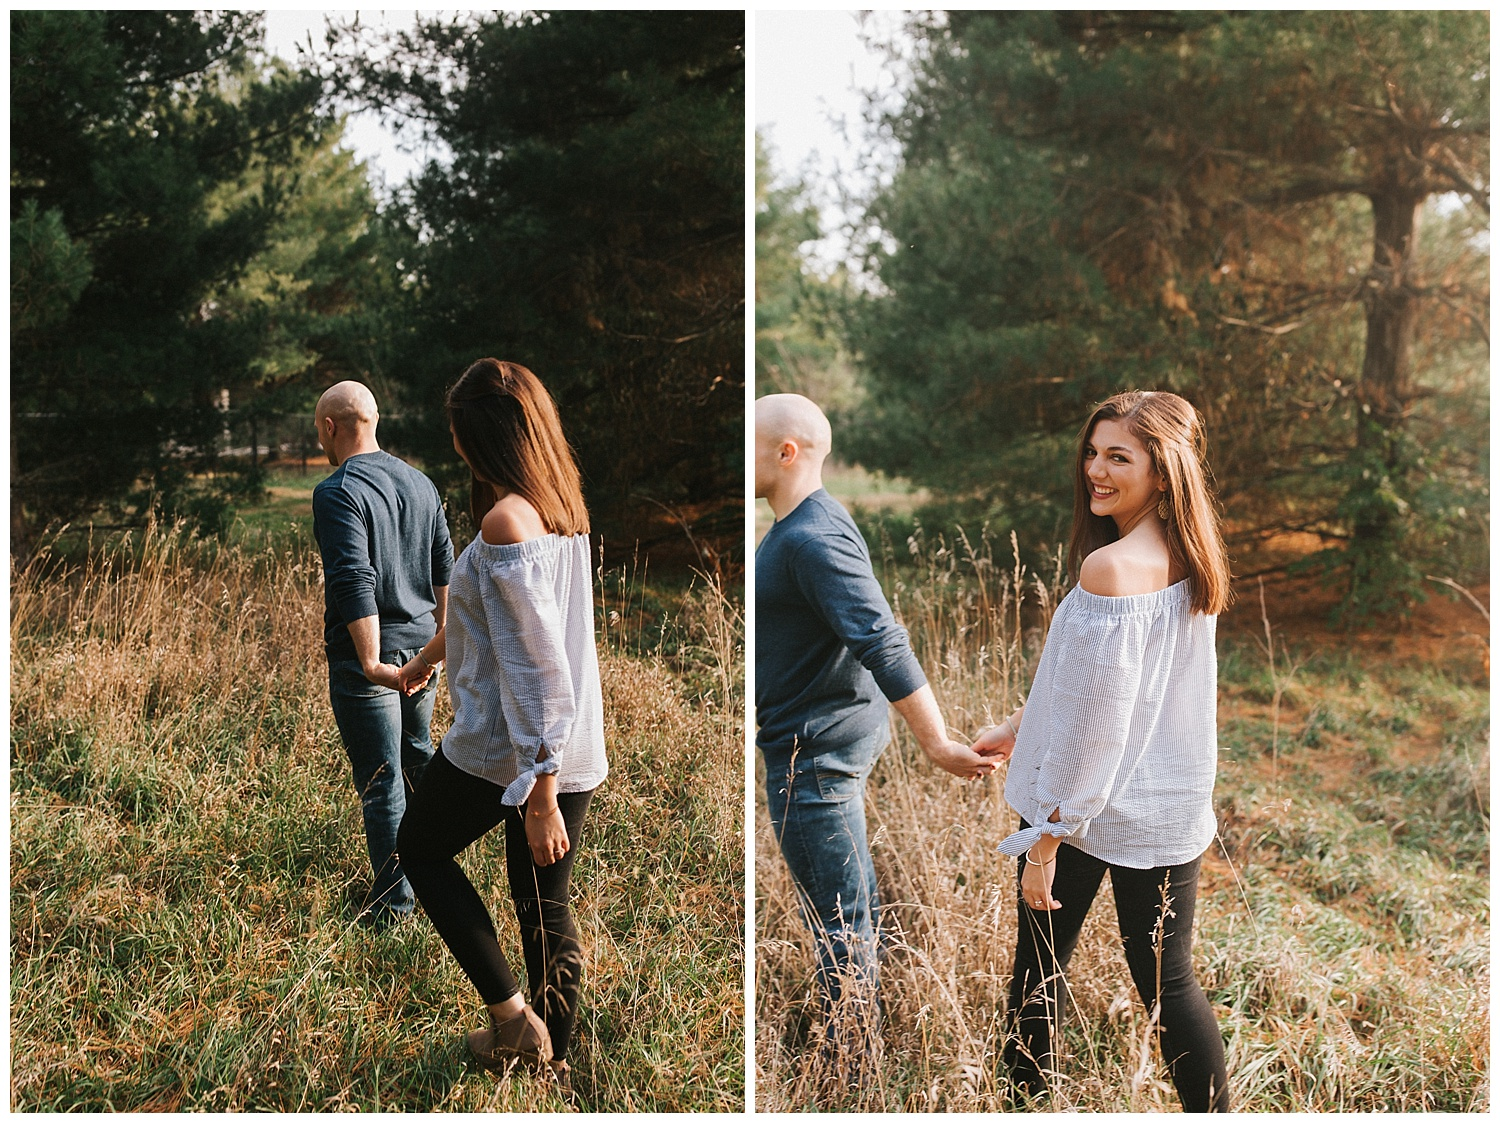 midwest_adventurous_engagement_session_traveling_photographer_0006.jpg